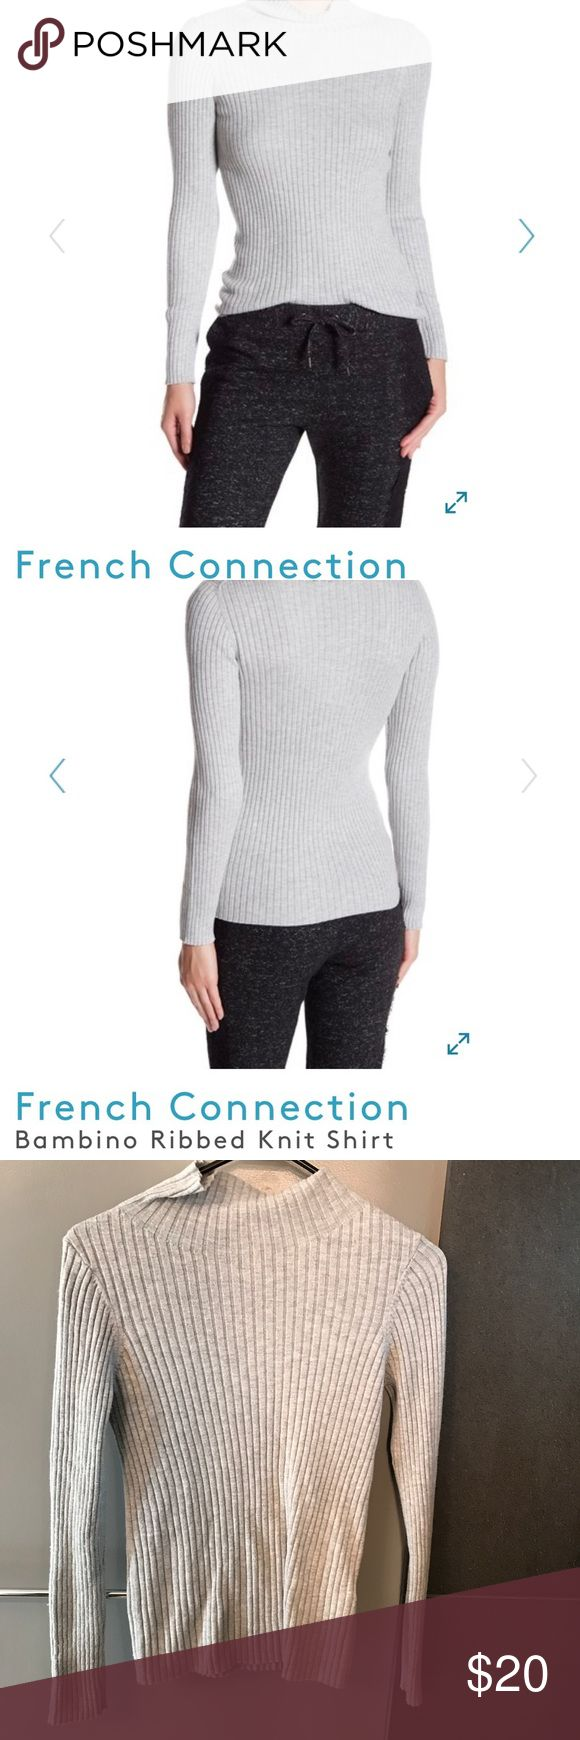 french connection ribbed turtle neck shirt xs Luxurious rubbed sweater.  Dress it up for the office or a night on the town with a pair of faux leather leggings.  XSmall. French Connection Sweaters Cowl & Turtlenecks